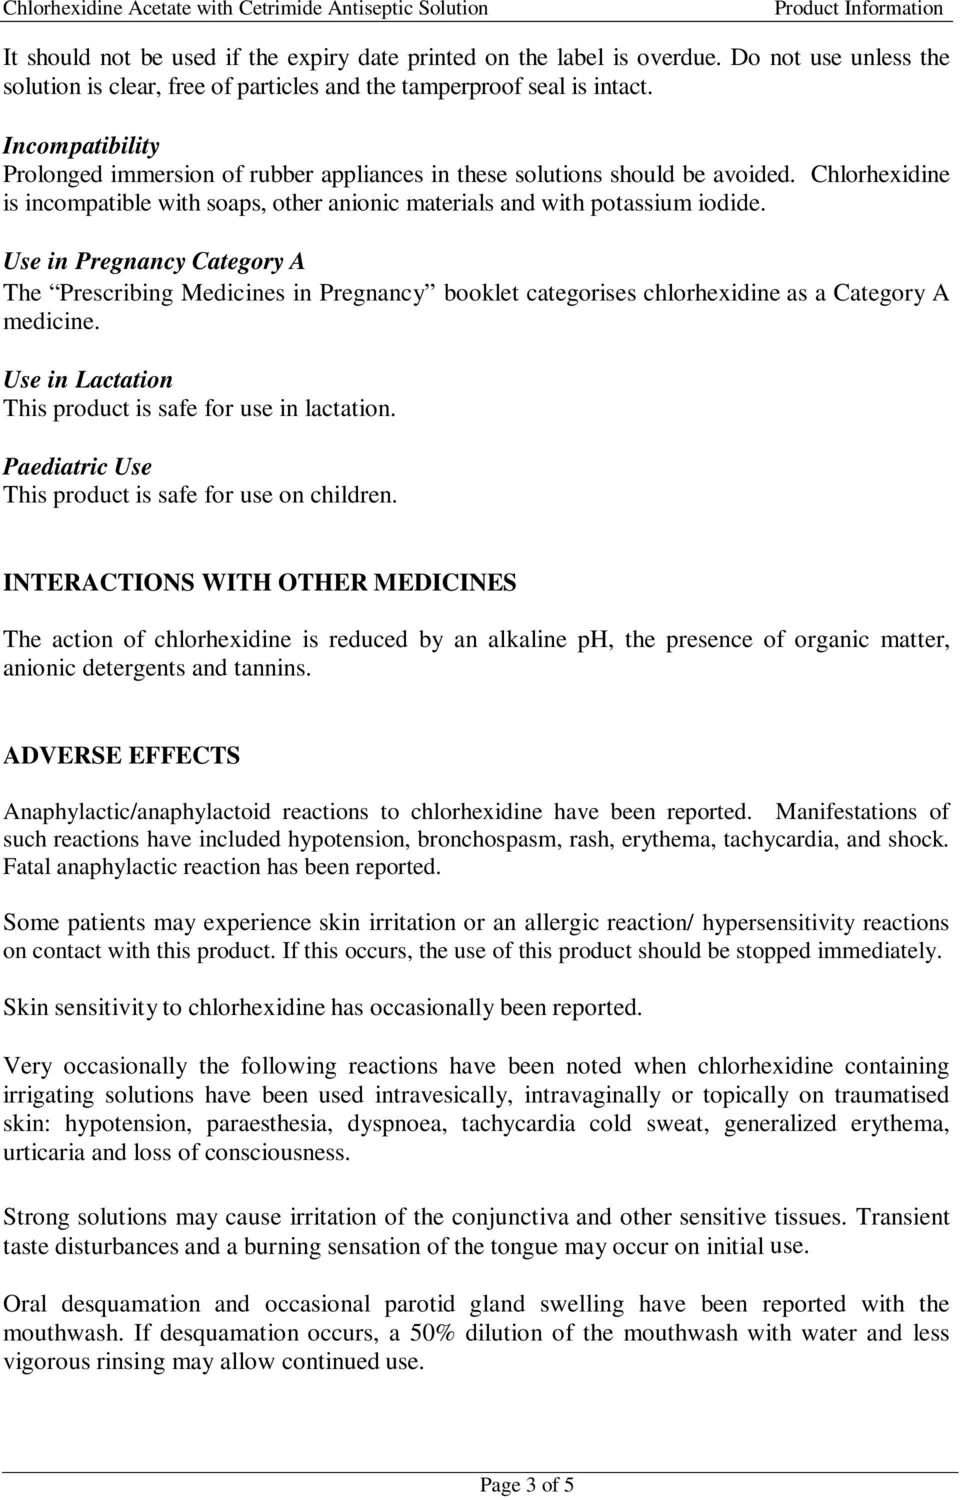 Use in Pregnancy Category A The Prescribing Medicines in Pregnancy booklet categorises chlorhexidine as a Category A medicine. Use in Lactation This product is safe for use in lactation.